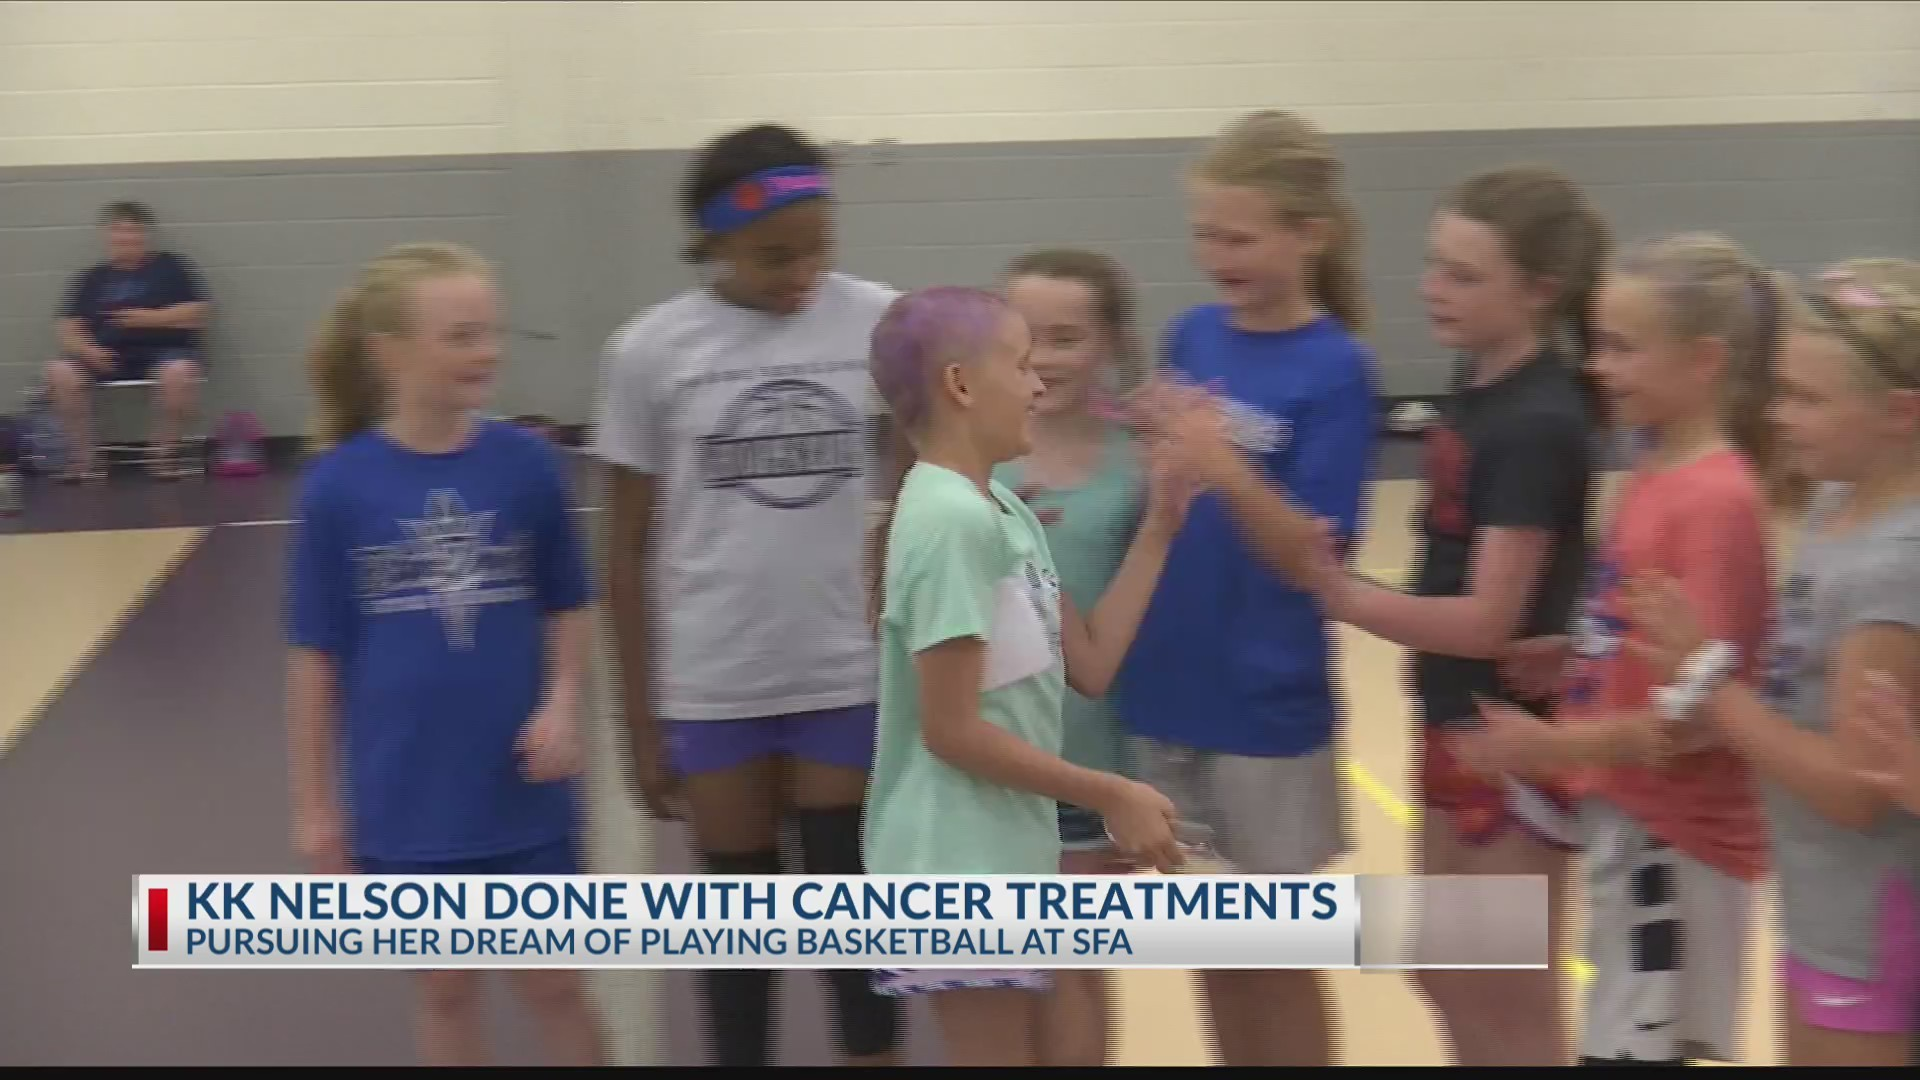 KK_Nelson_done_with_cancer_0_20190612232104